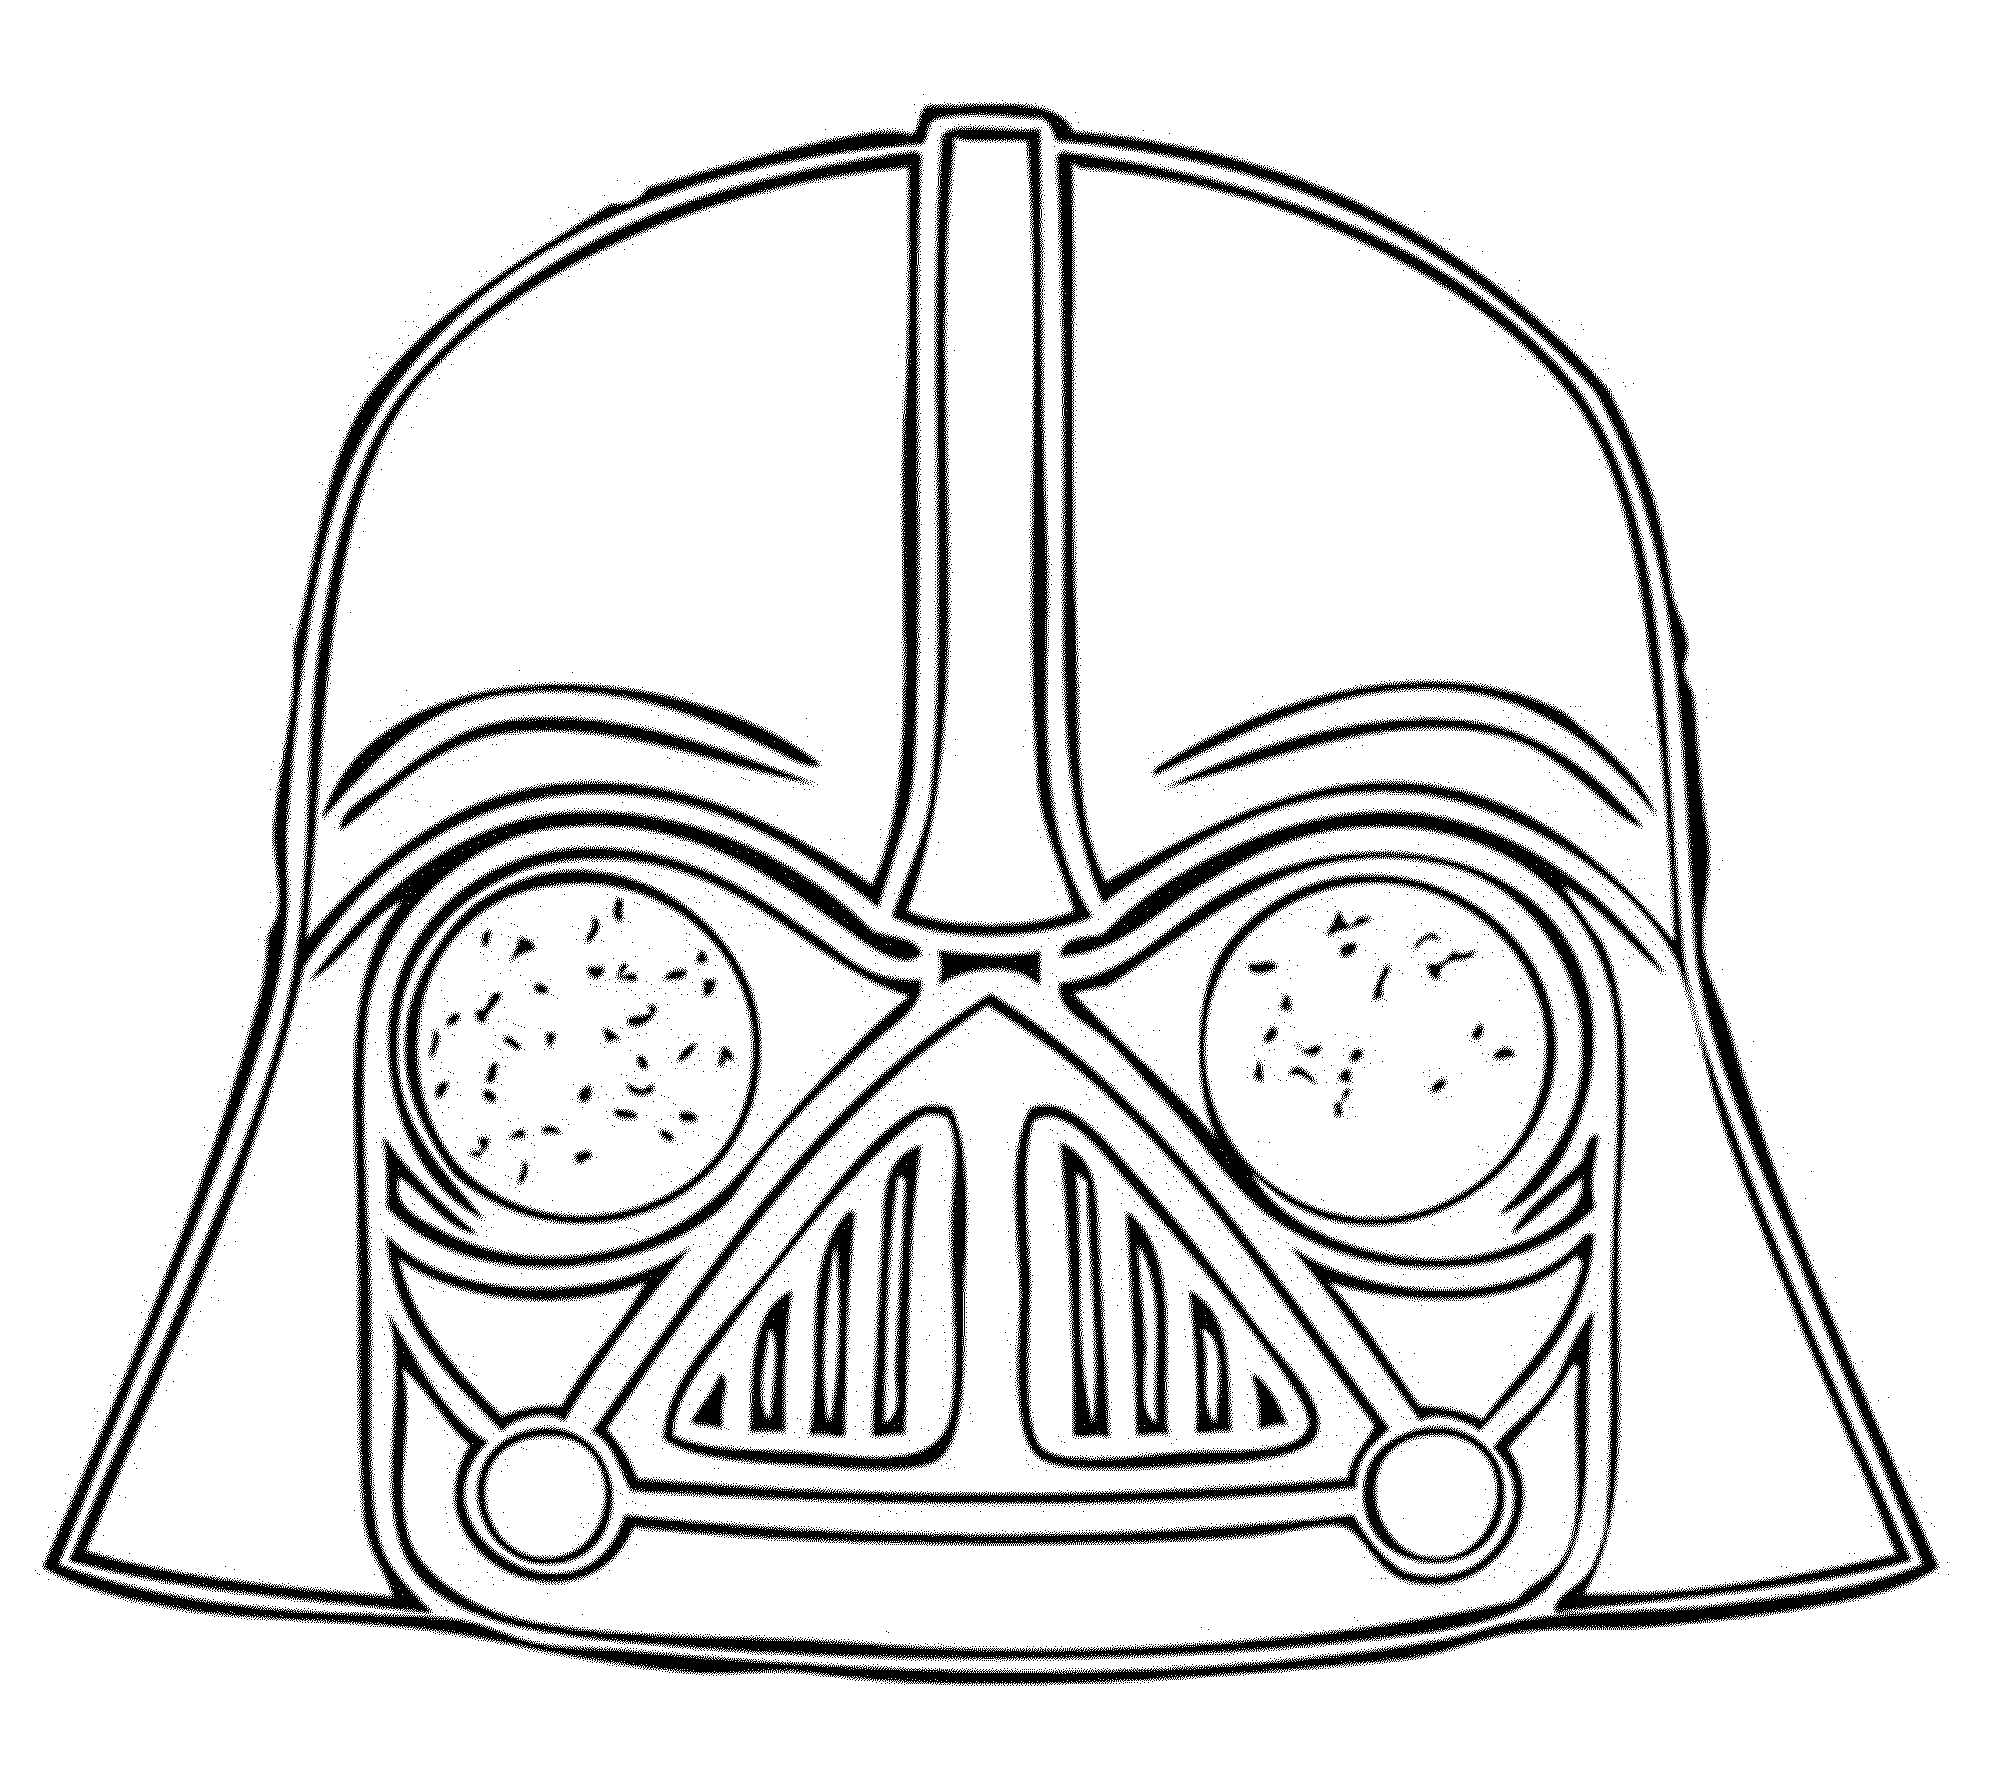 Angry Birds Star Wars Coloring Page Best Apps For Kids